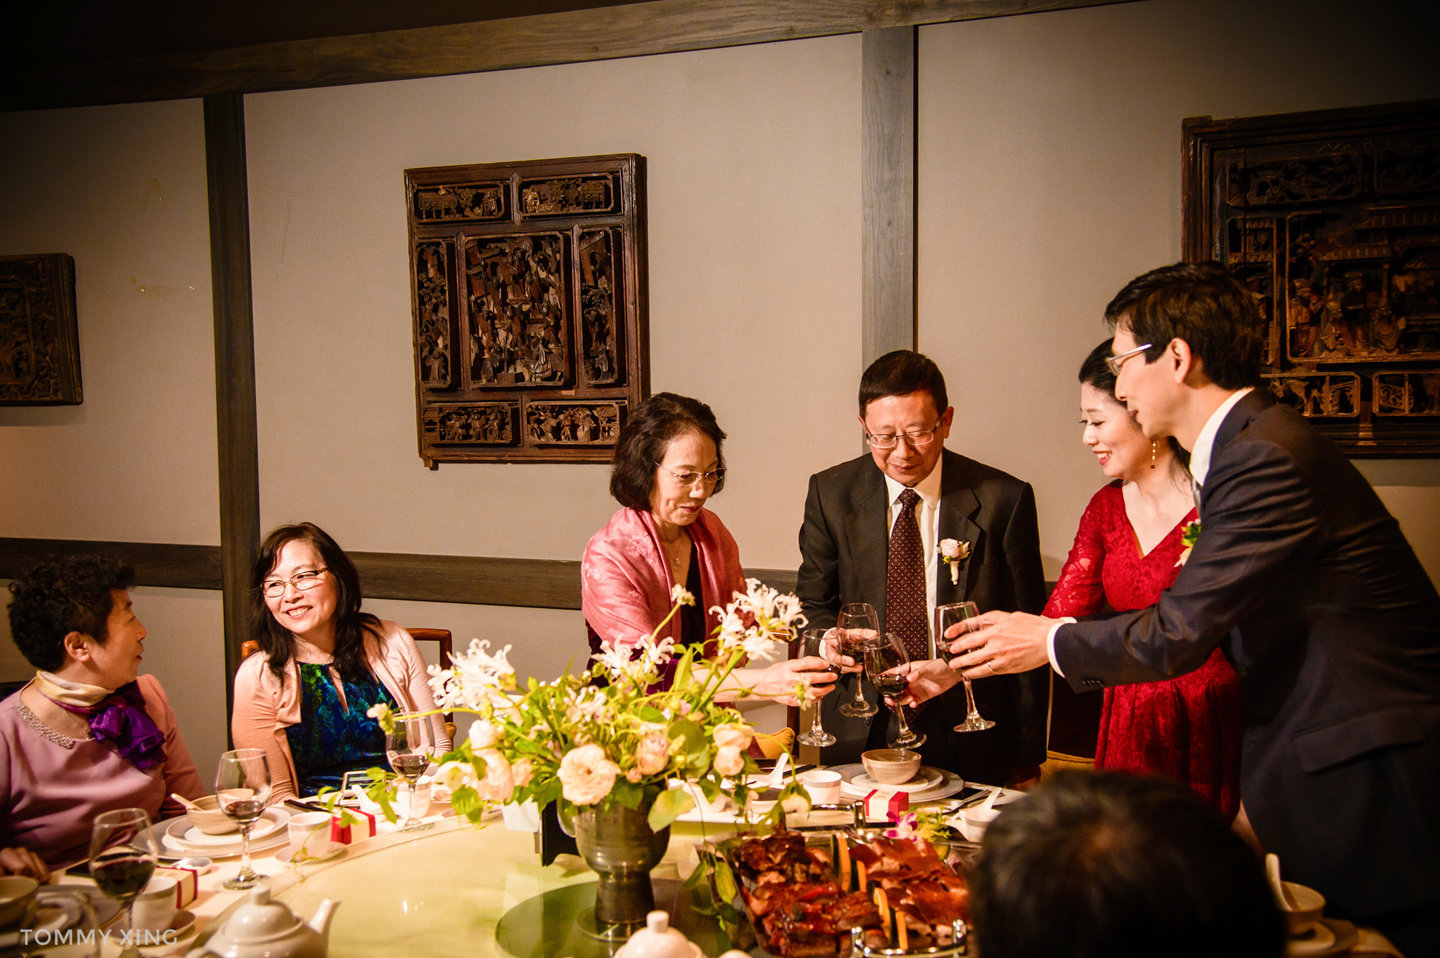 San Francisco Wedding Photography Valley Presbyterian Church WEDDING Tommy Xing Photography 洛杉矶旧金山婚礼婚纱照摄影师116.jpg